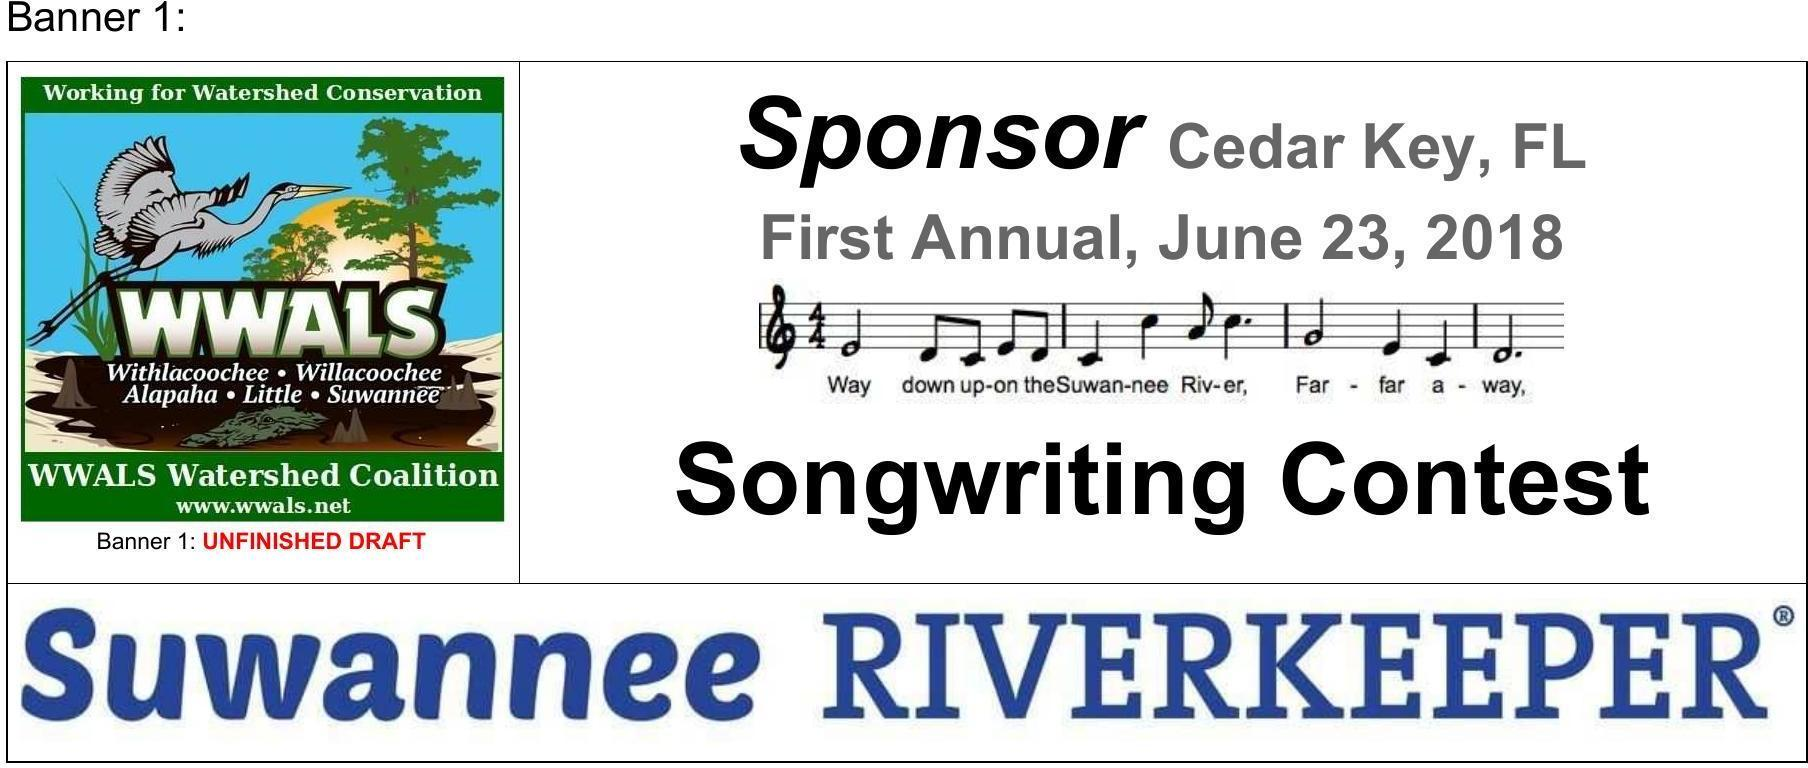 1808x768 Banner 1: music and long SuwRK banner, Draft Banners, in Draft sponsor banners: Suwannee Riverkeeper Songwriting Contest, by John S. Quarterman, for WWALS.net, 26 February 2018